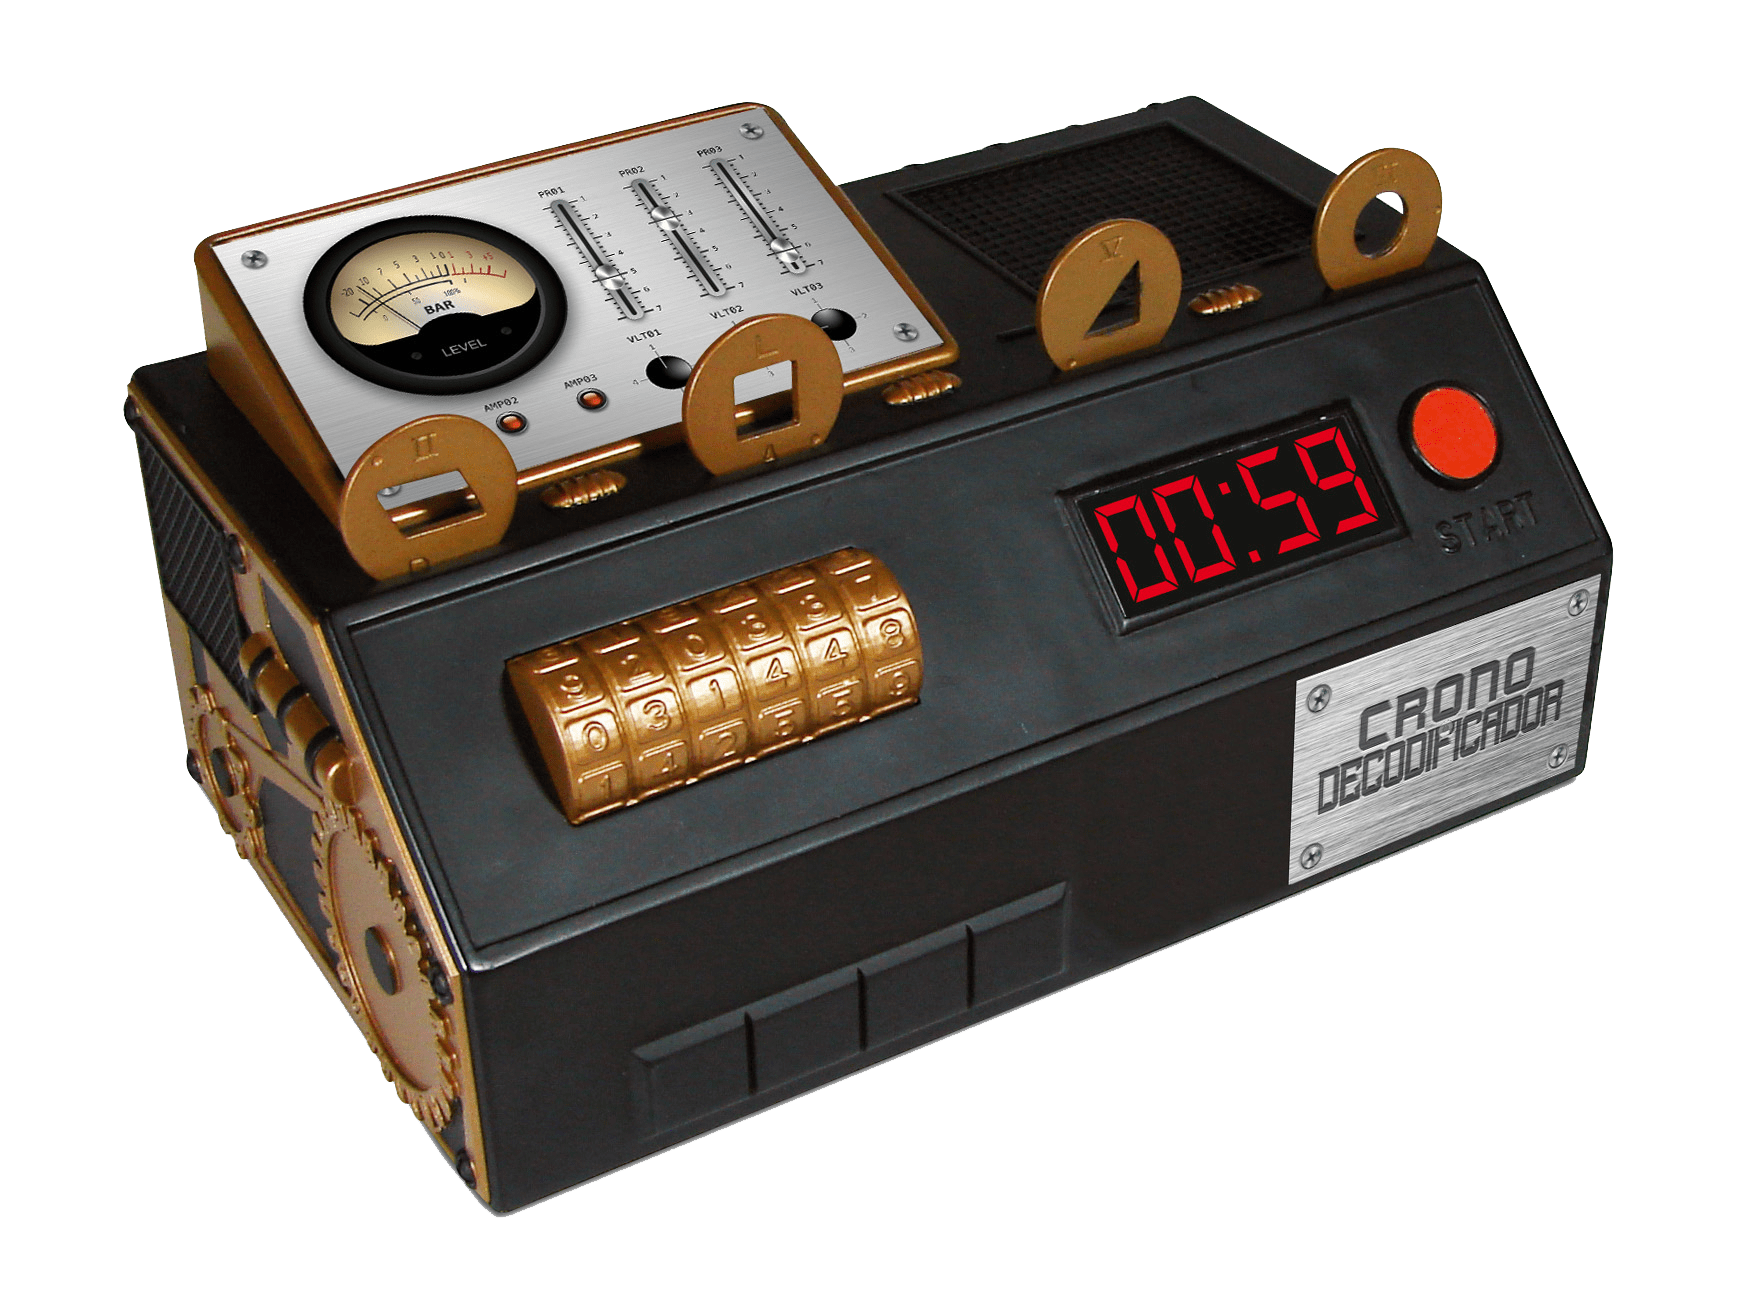 ER Chrono Decoder copia